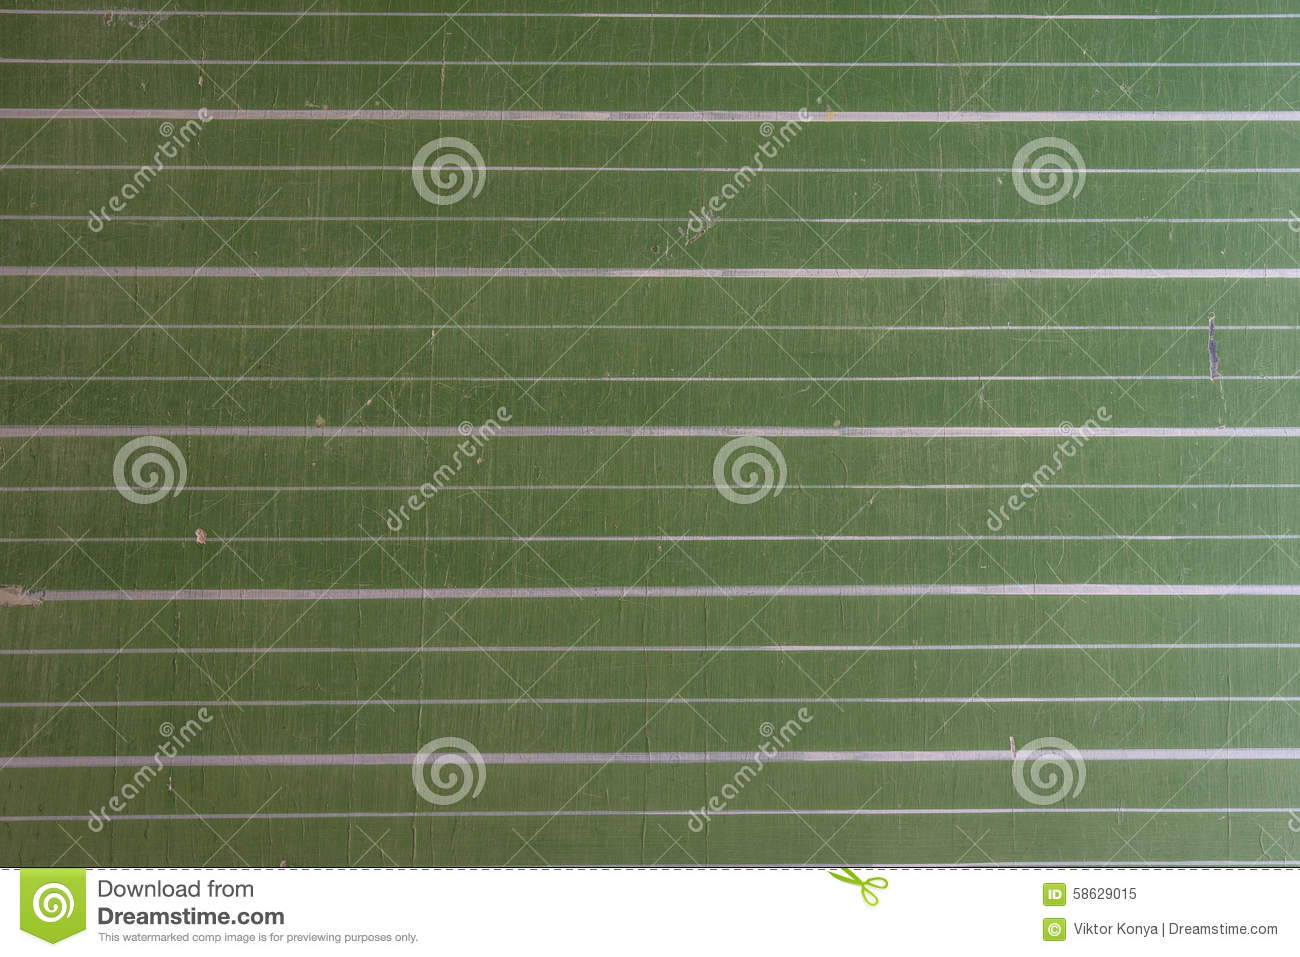 Close up of a green, striped chalkboard